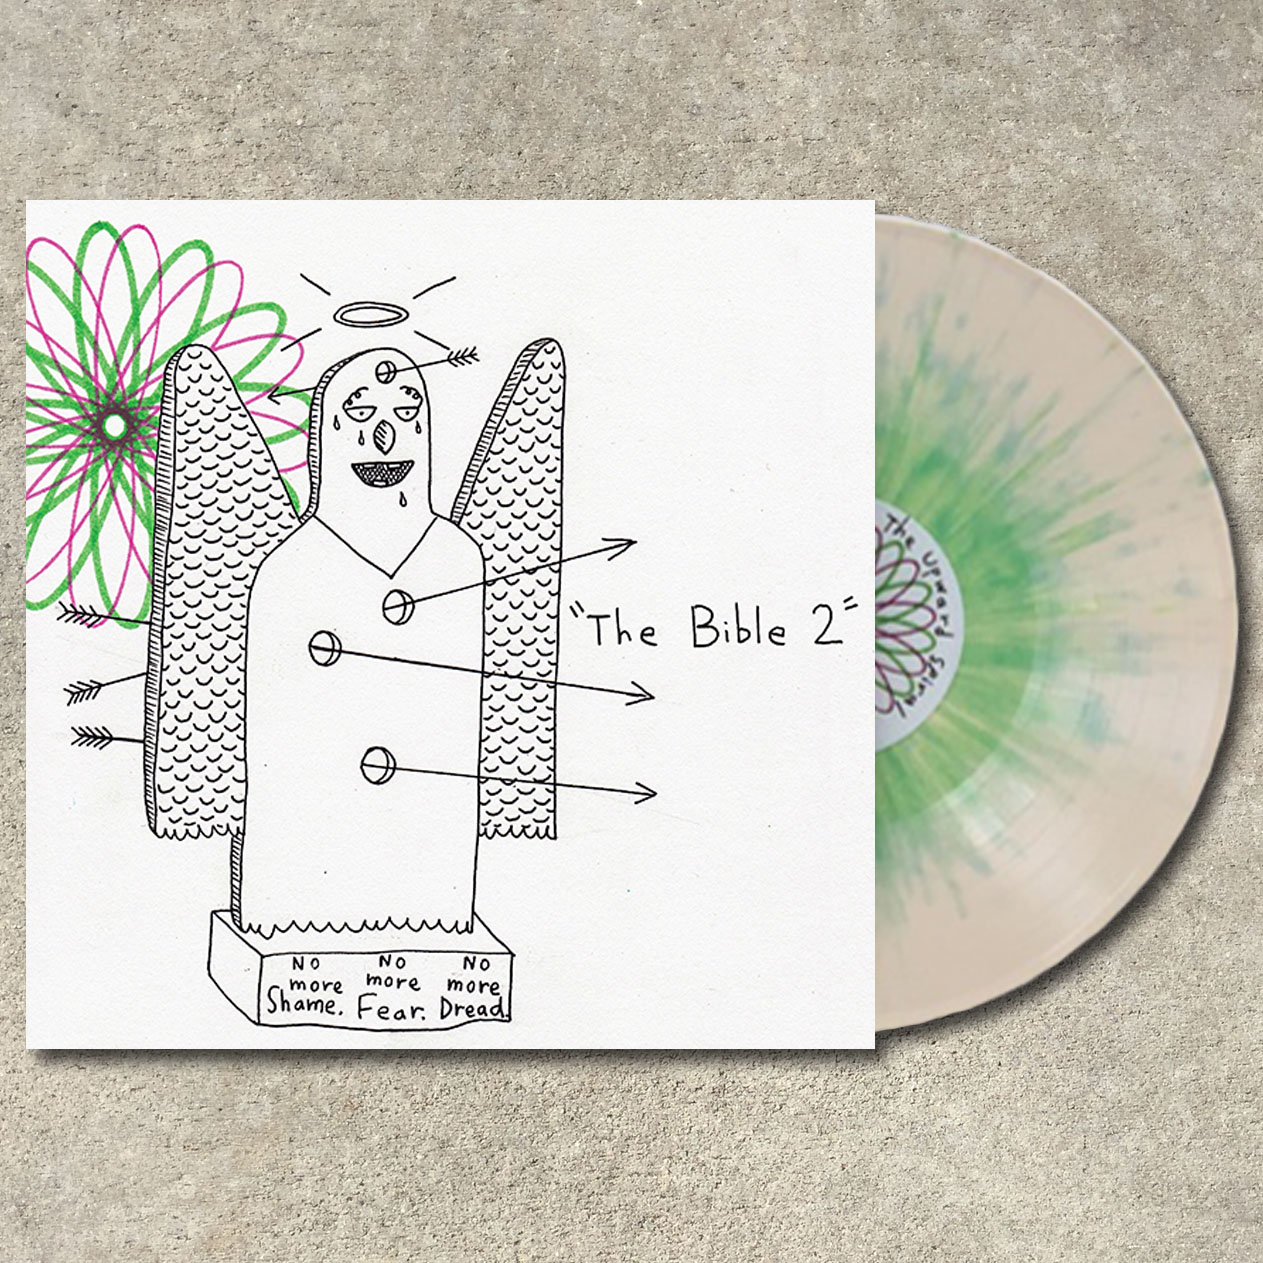 AJJ- The Bible 2 LP (Andrew Jackson Jihad)